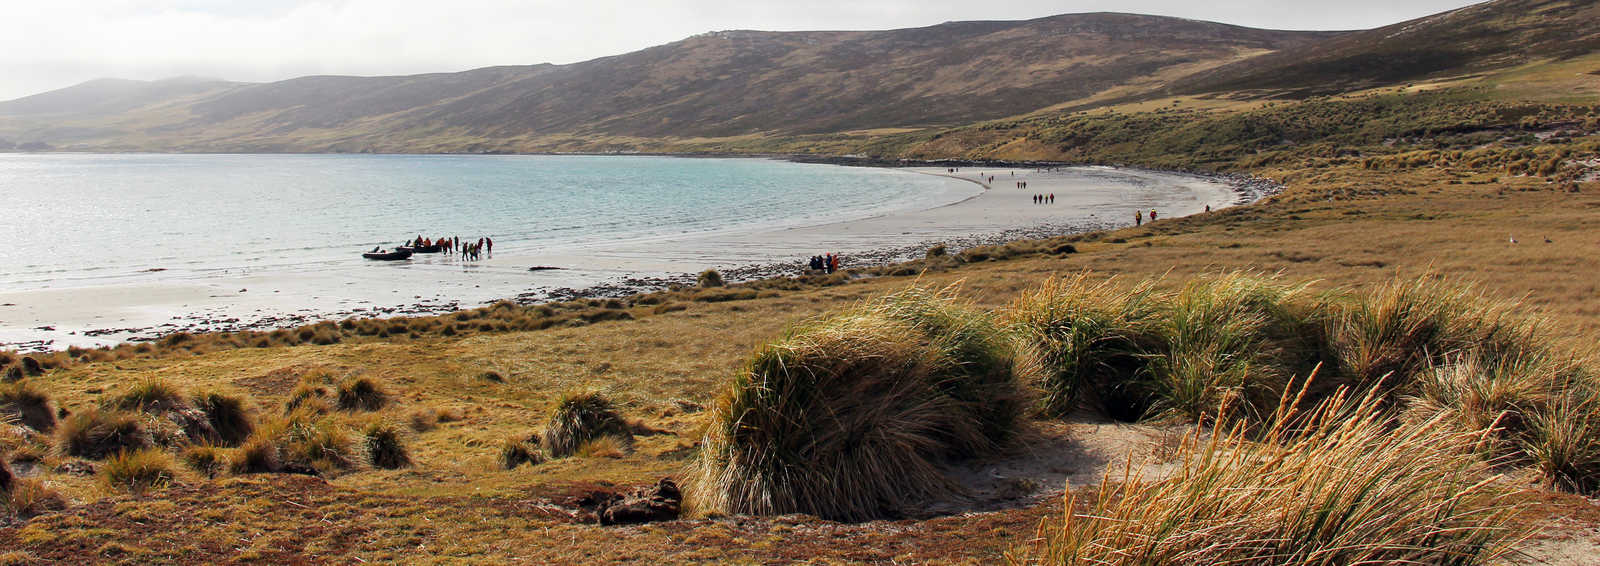 West Point Island, Falklad Islands